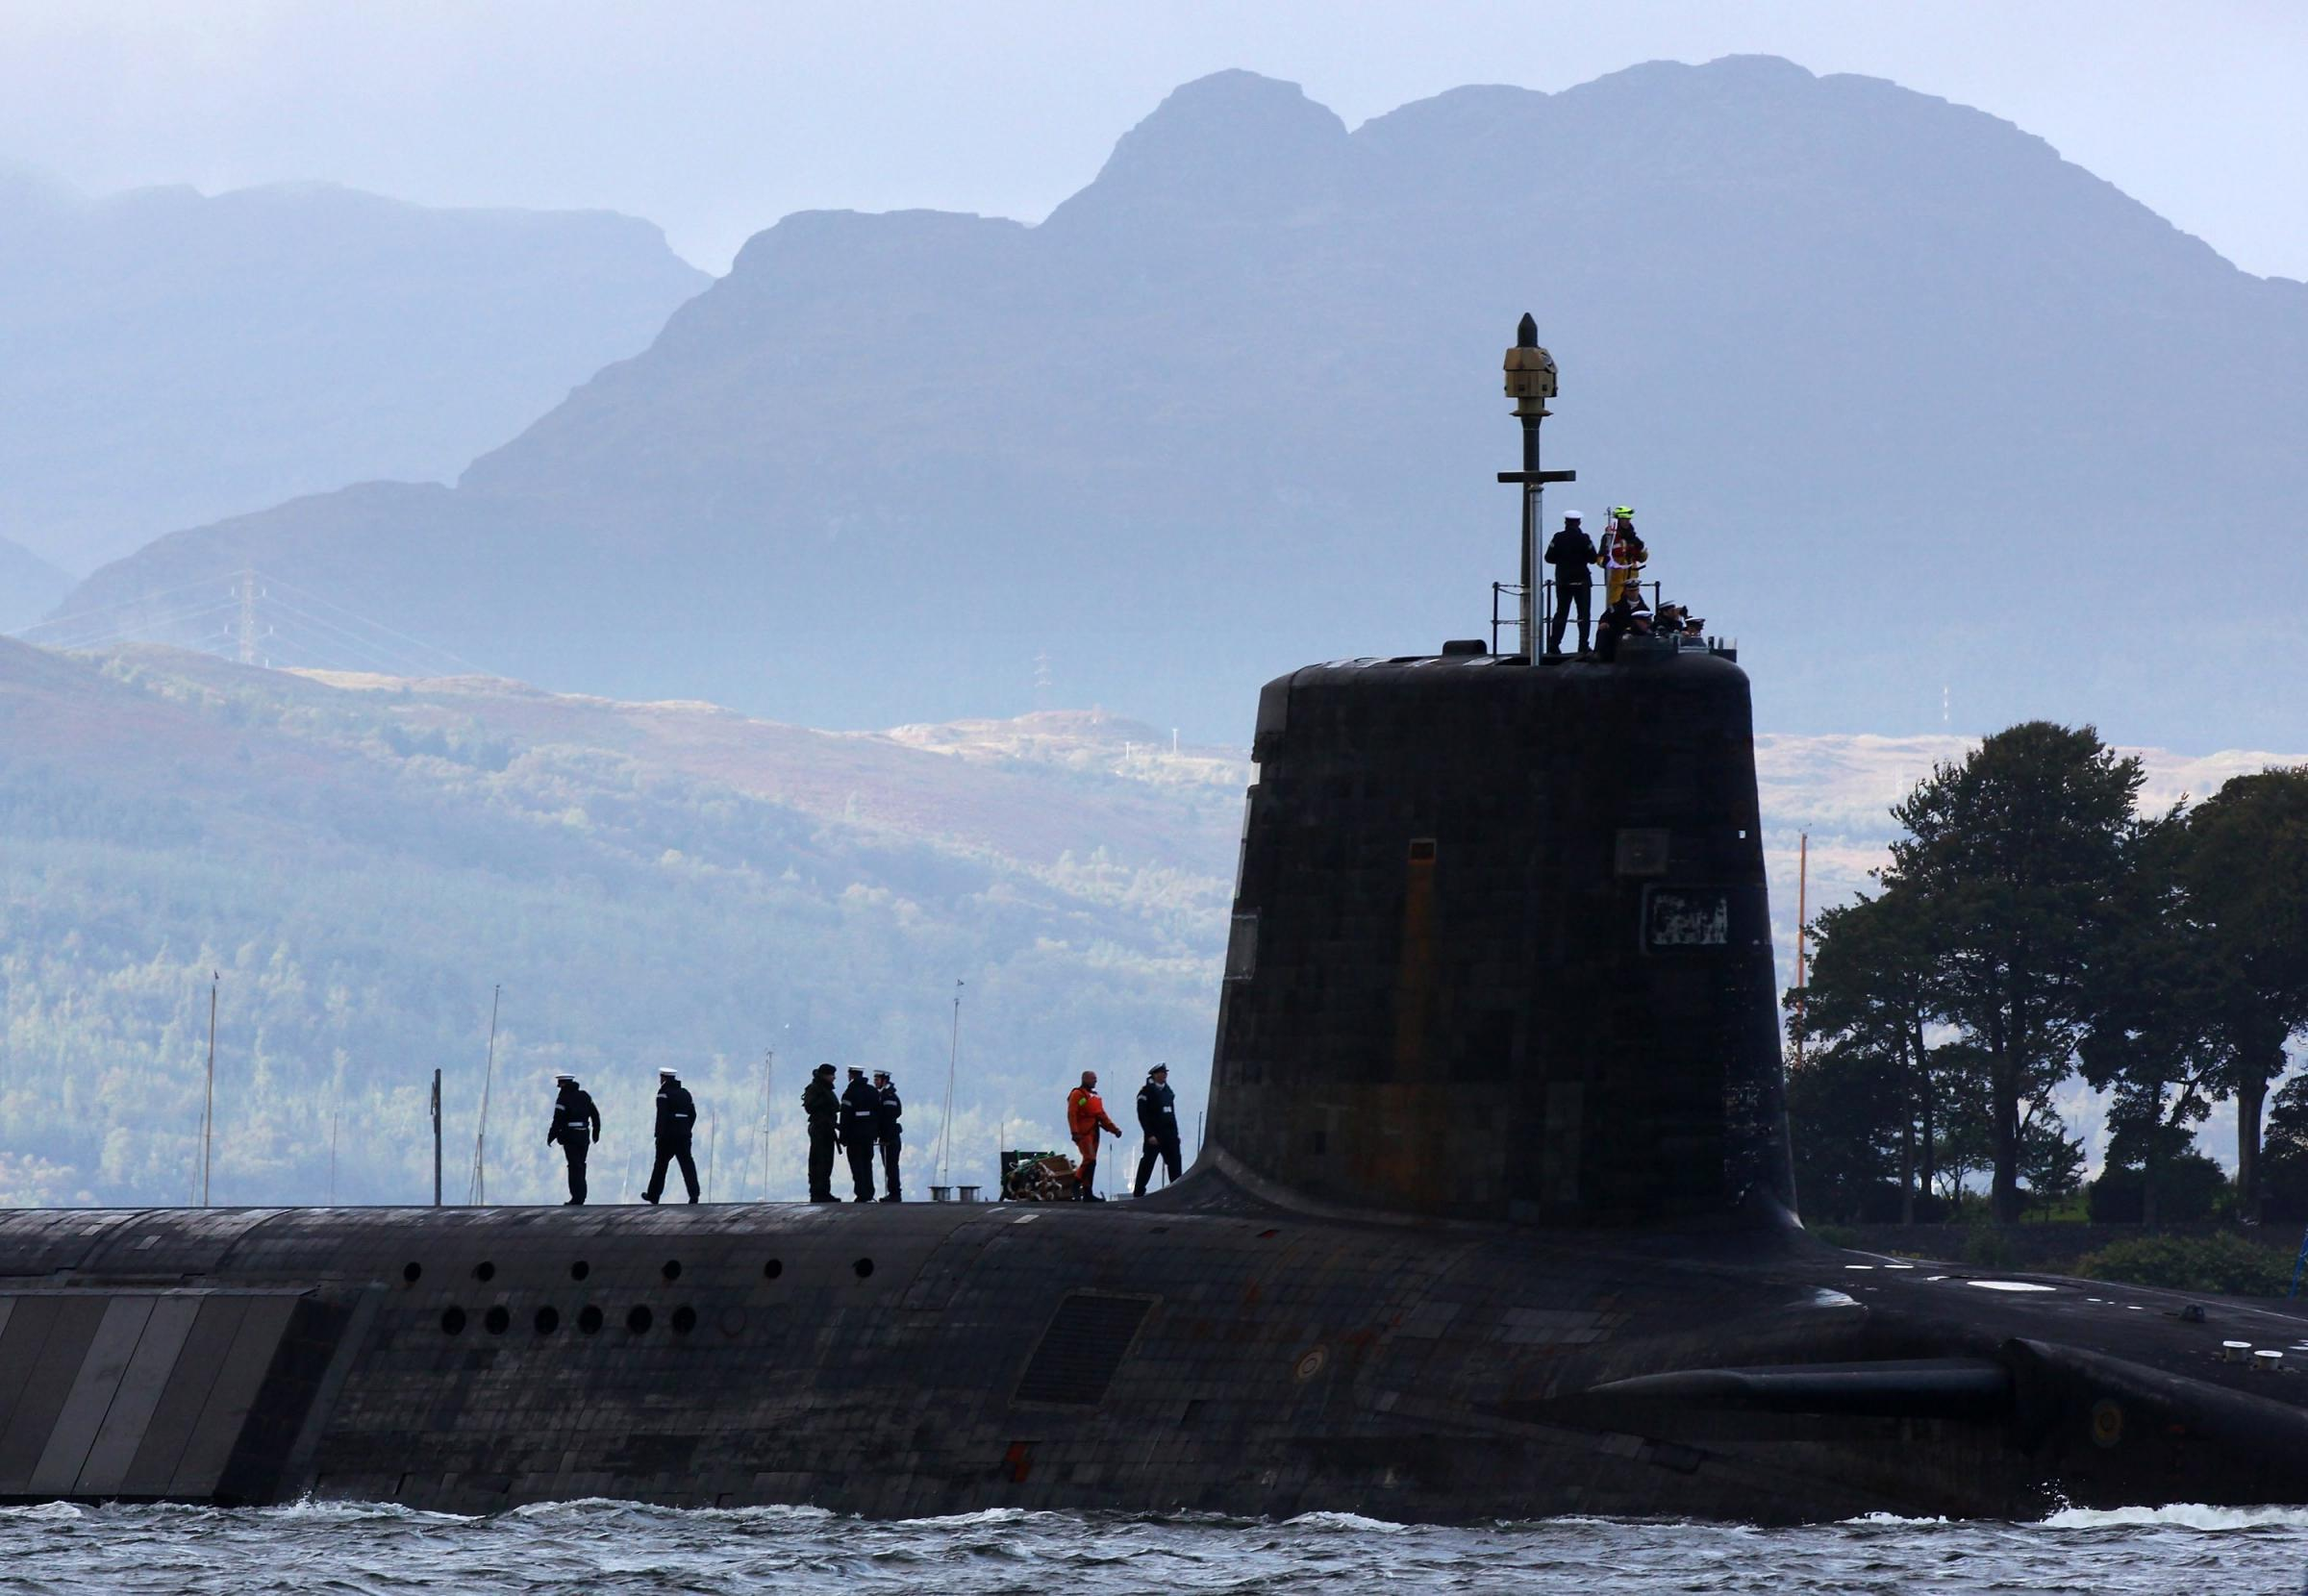 Revealed: The two secret break-ins at Trident base the MoD tried to cover up